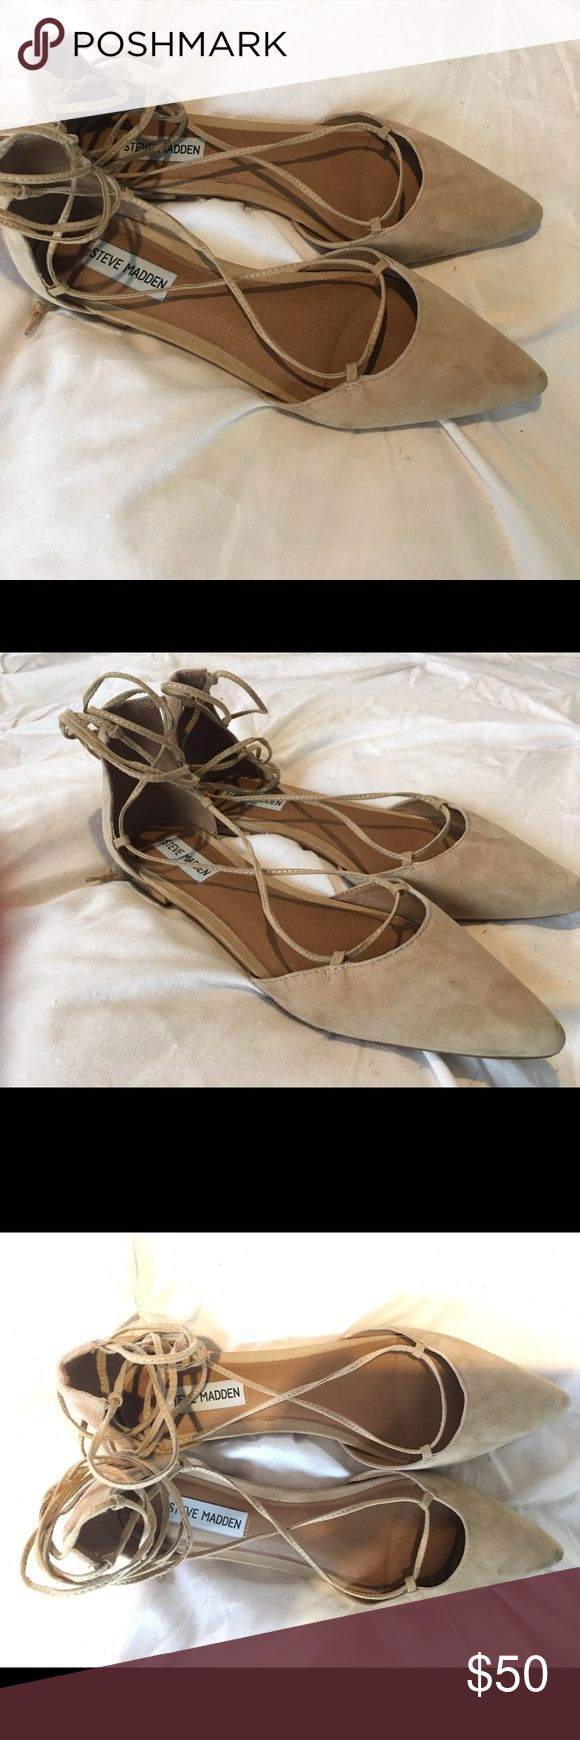 Size 9/9.5 Steve Madden nude lace up flats Perfect condition never been worn Steve Madden nude lace up flats. Super cute understated gold detail on the heel. 50 OBO. Would be a great springtime shoe or wedding shoe. Steve Madden Shoes Flats & Loafers